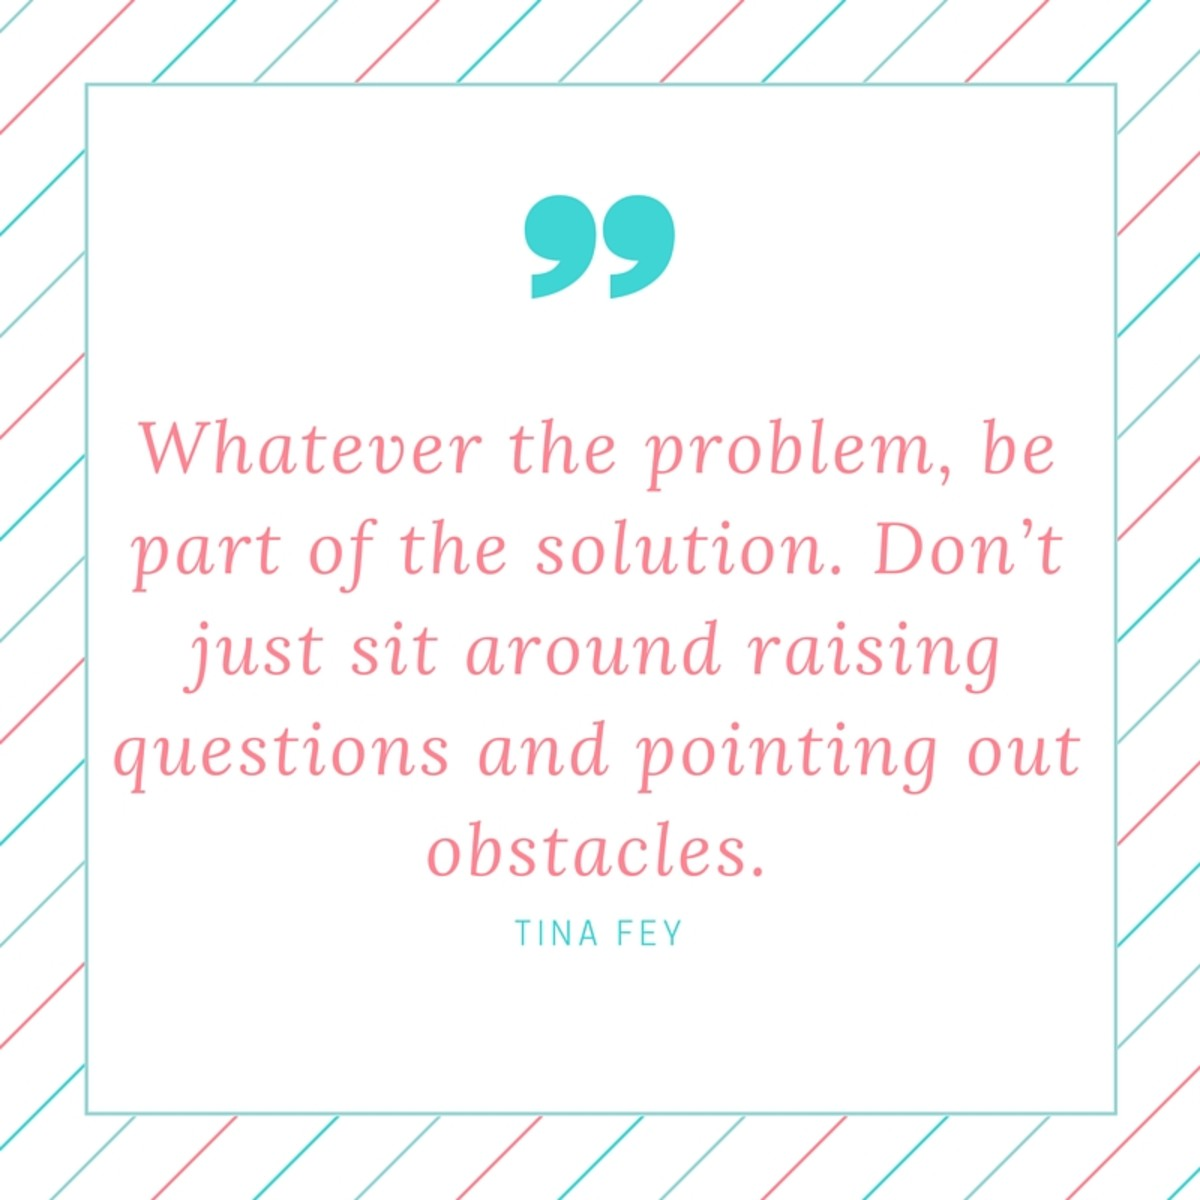 Whatever the problem, be part of the solution. Don't just sit around raising questions and pointing out obstacles. (1)